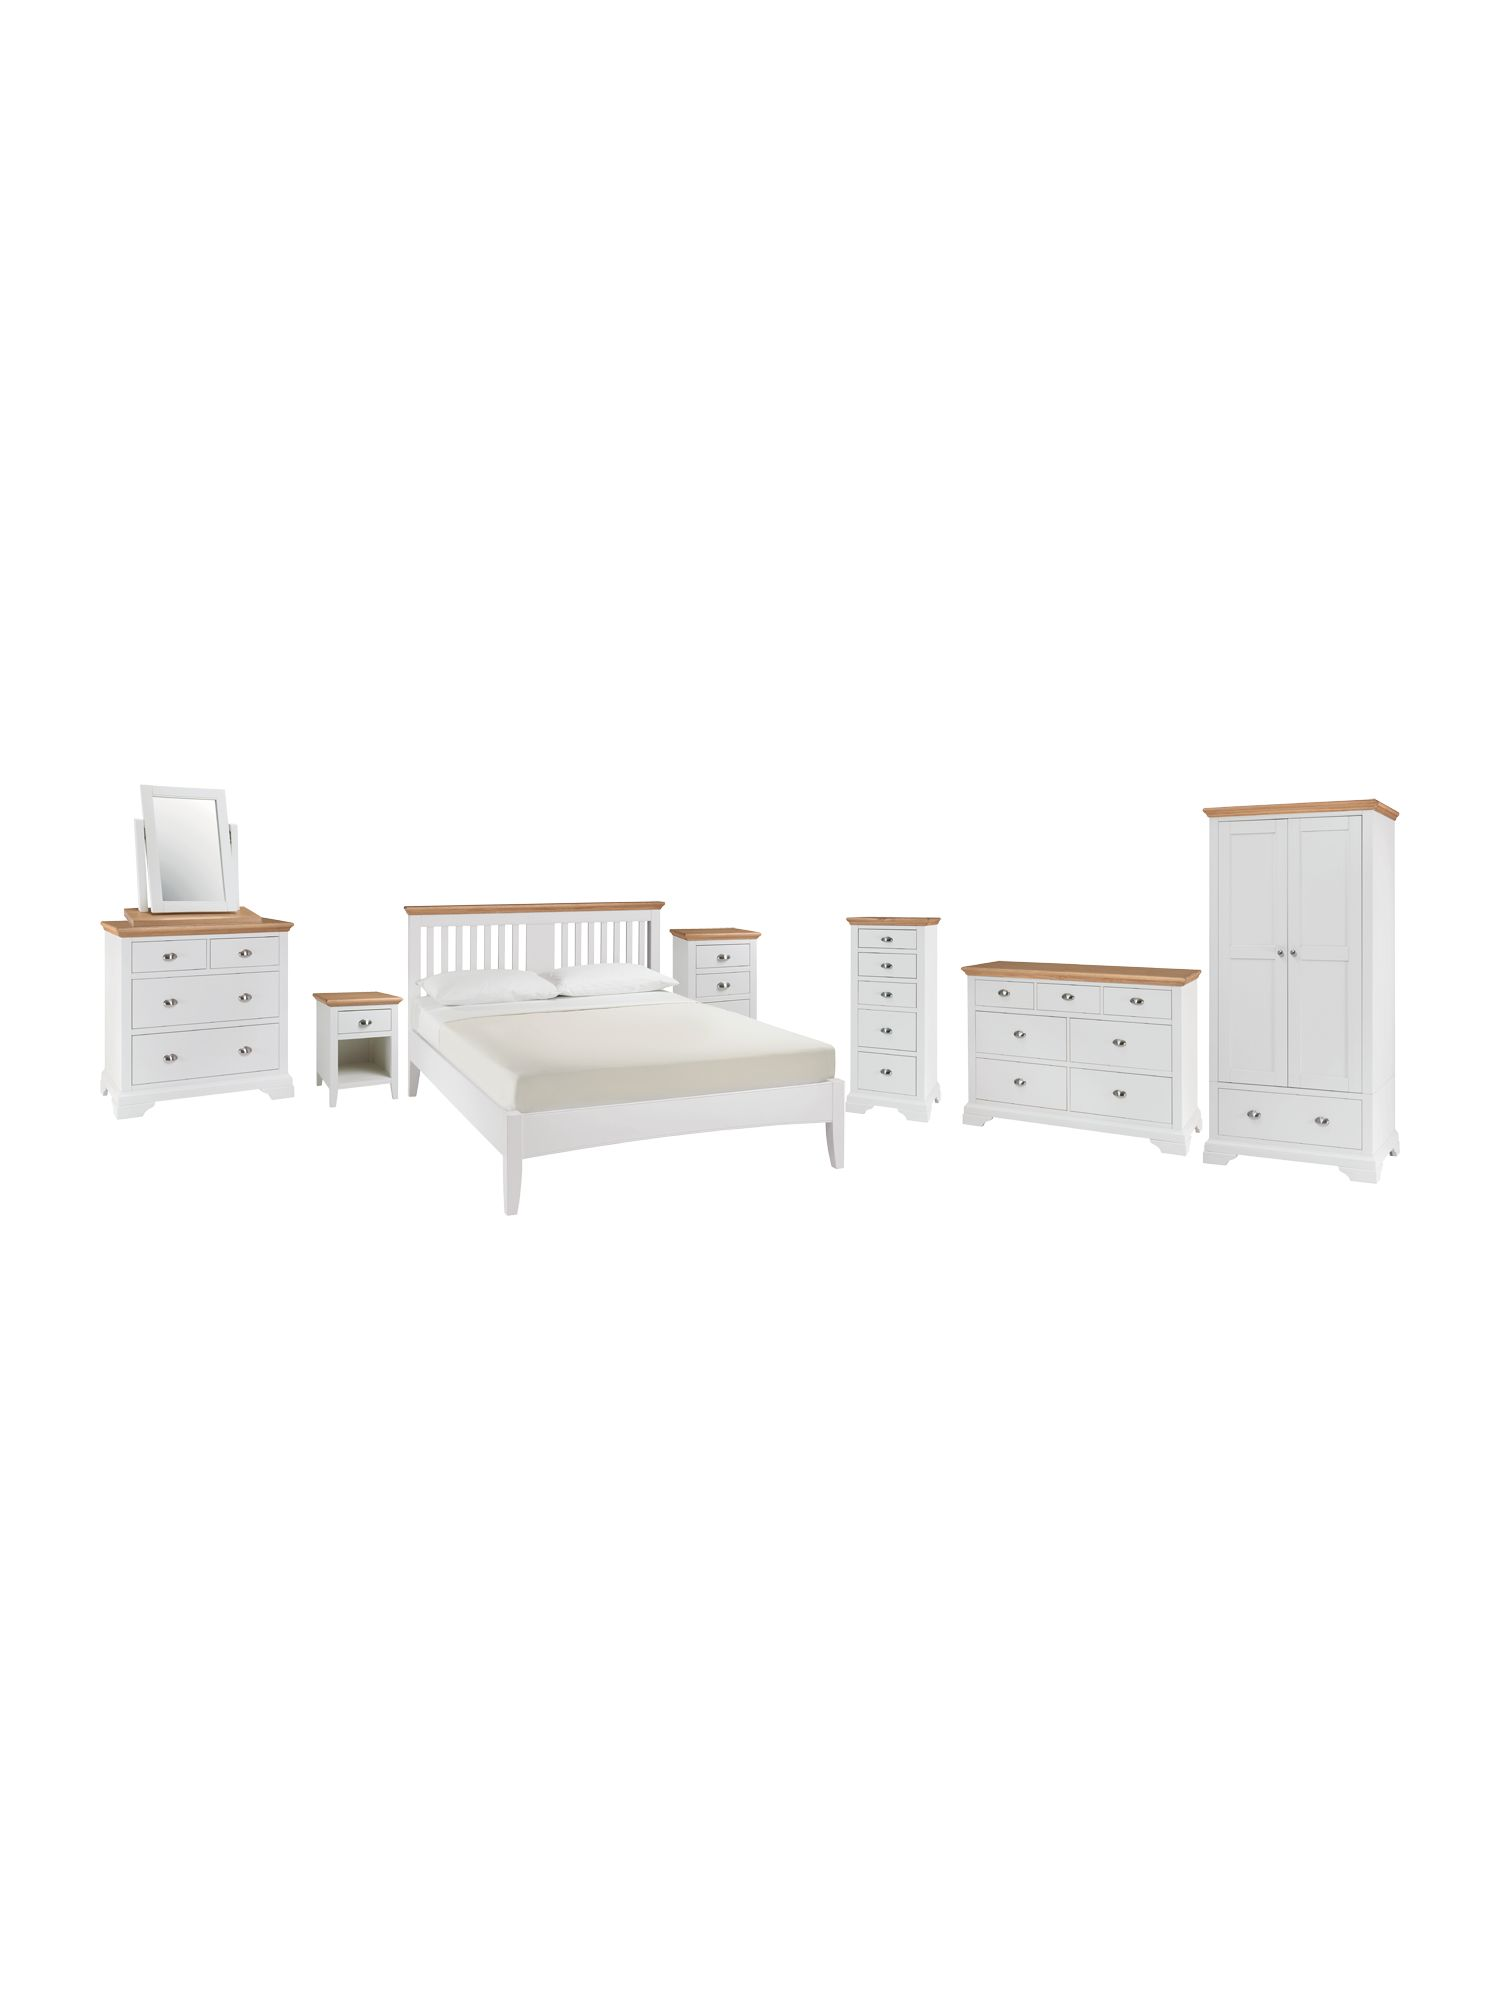 Etienne Bedroom Furniture Range